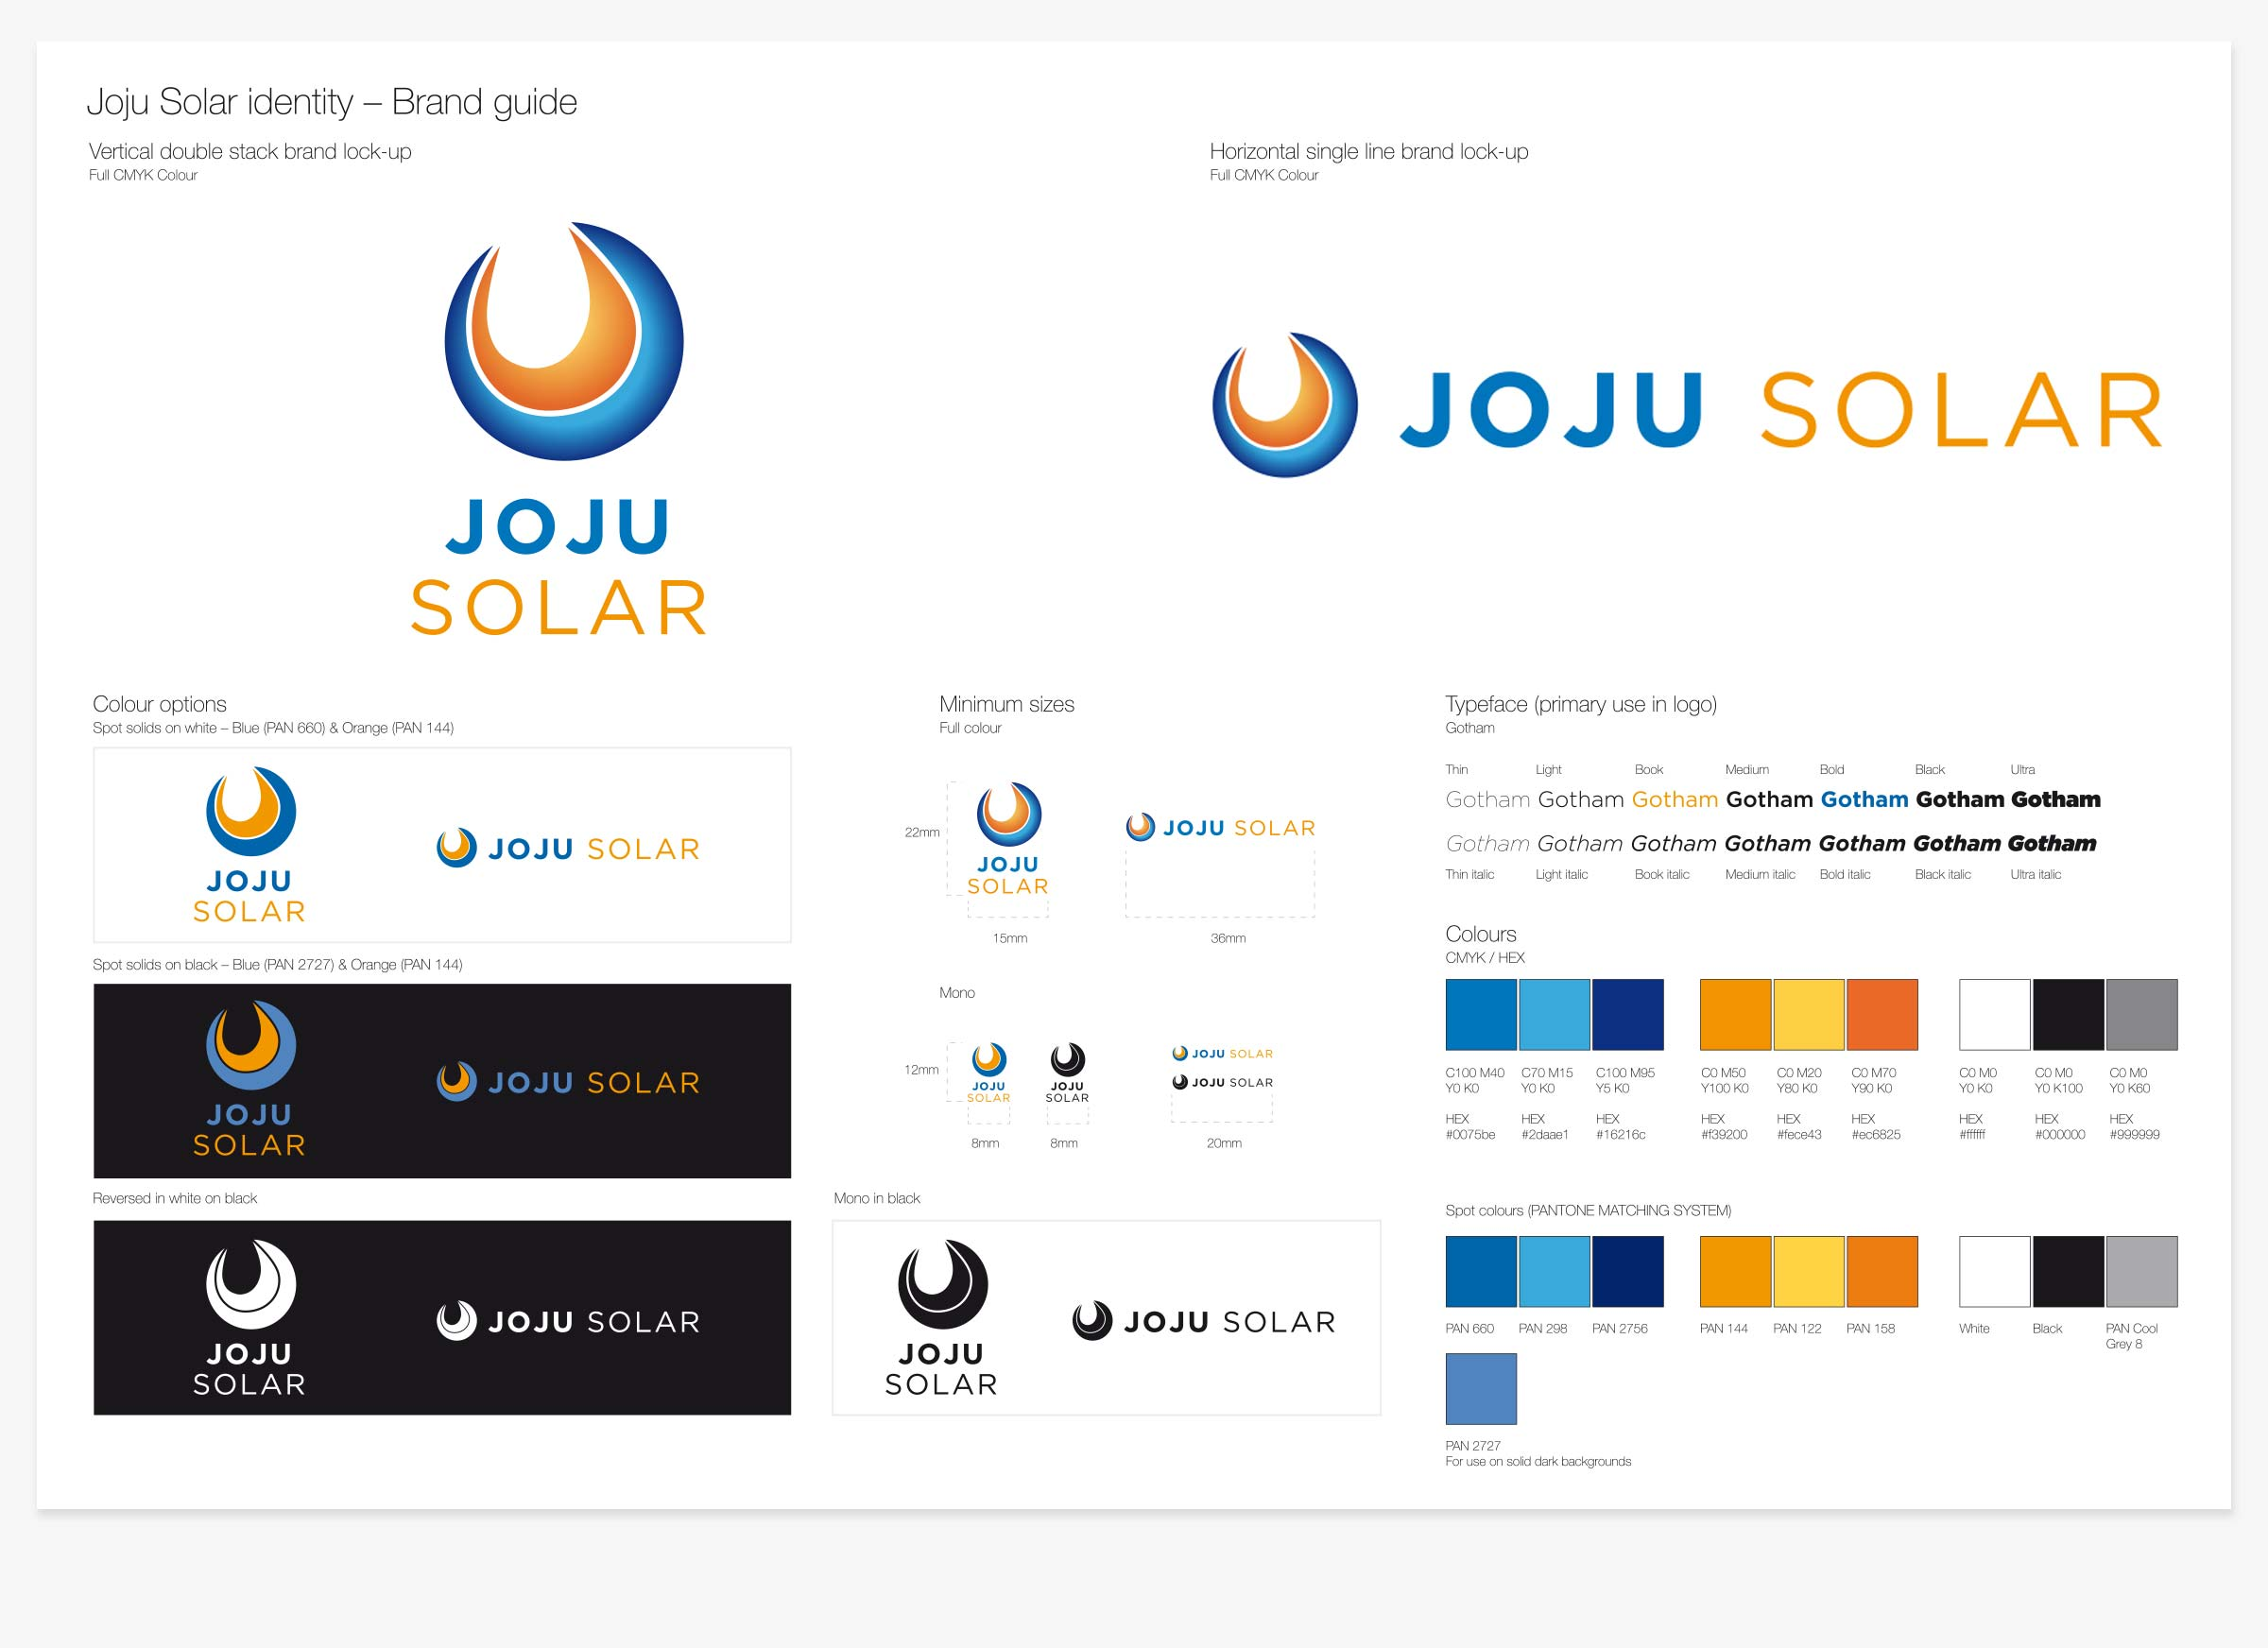 Joju Solar guideline document